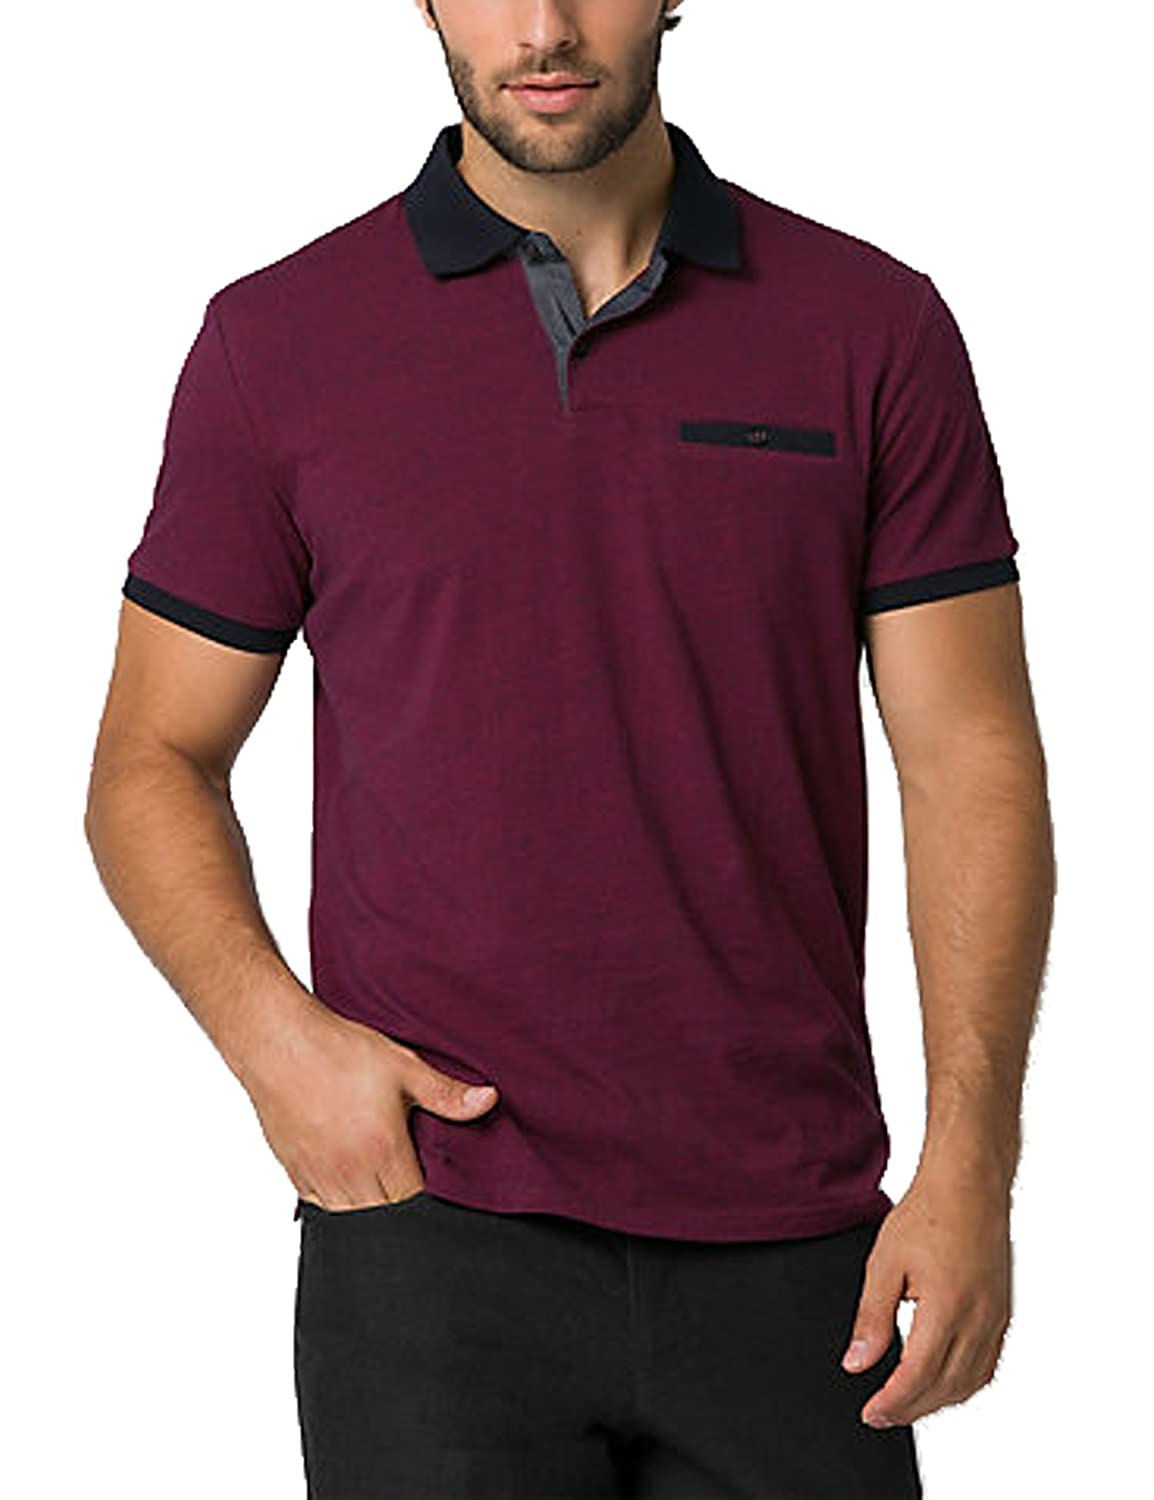 9f3a5df59 DESIGN  Short-sleeve performance polo shirt with two-button placket and  Contrast Color